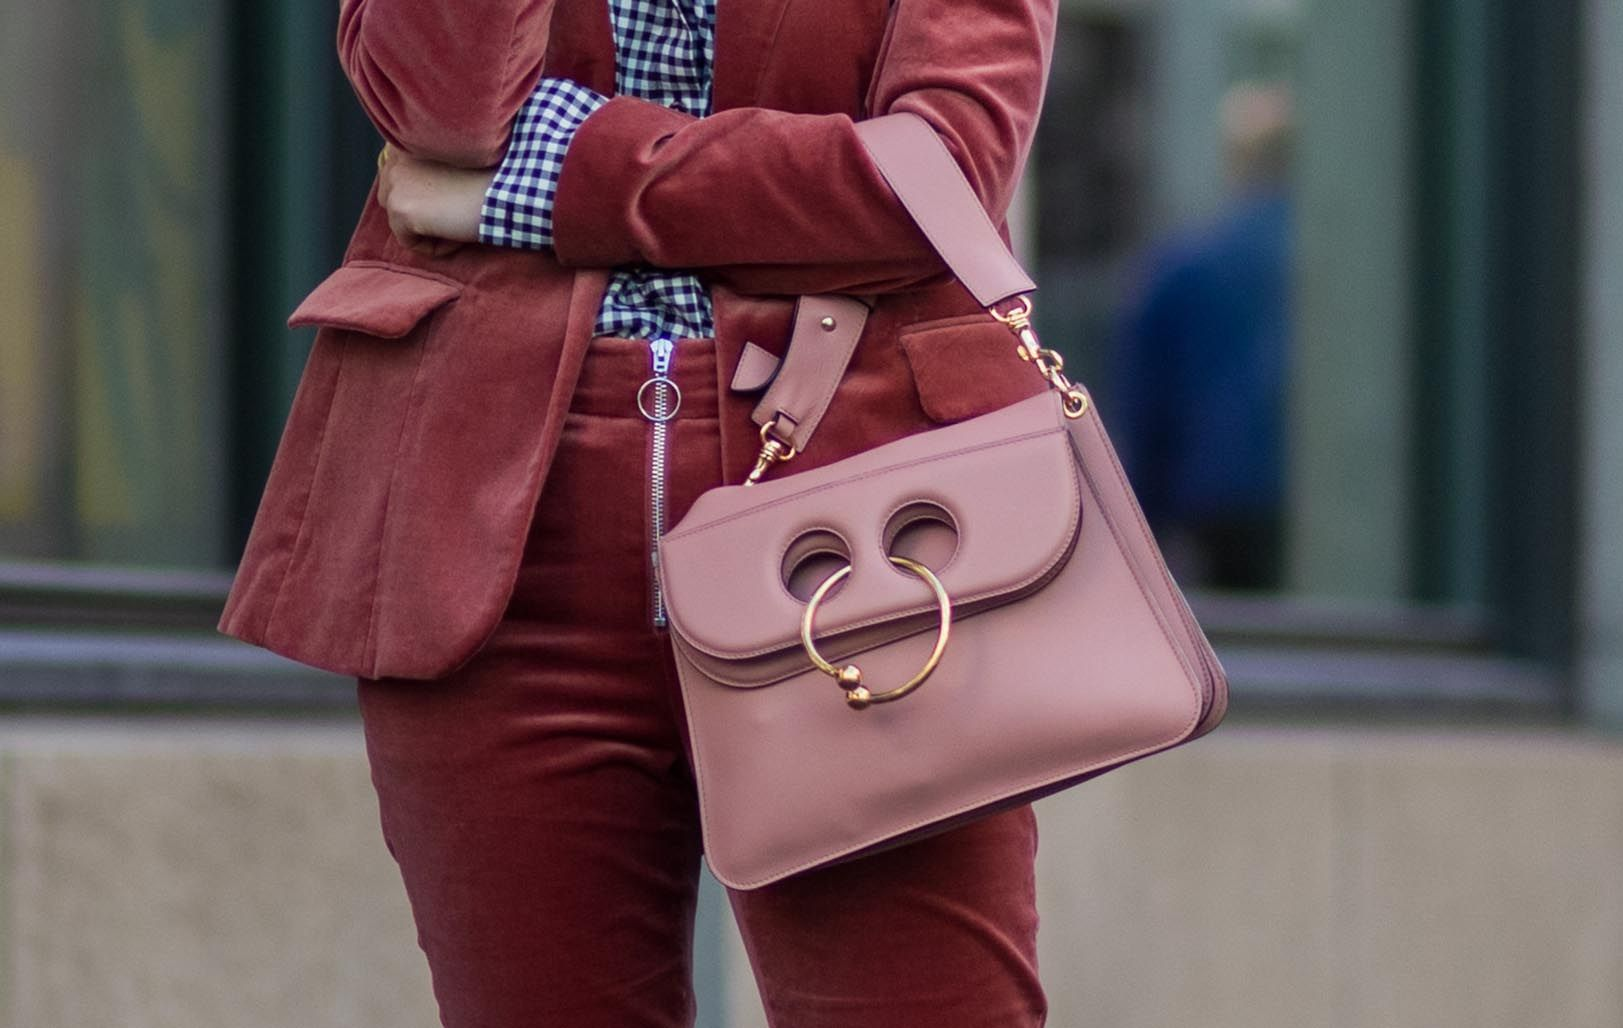 The Best Investment Bags To Chanel Prada Dior Fendi Hermes Celine